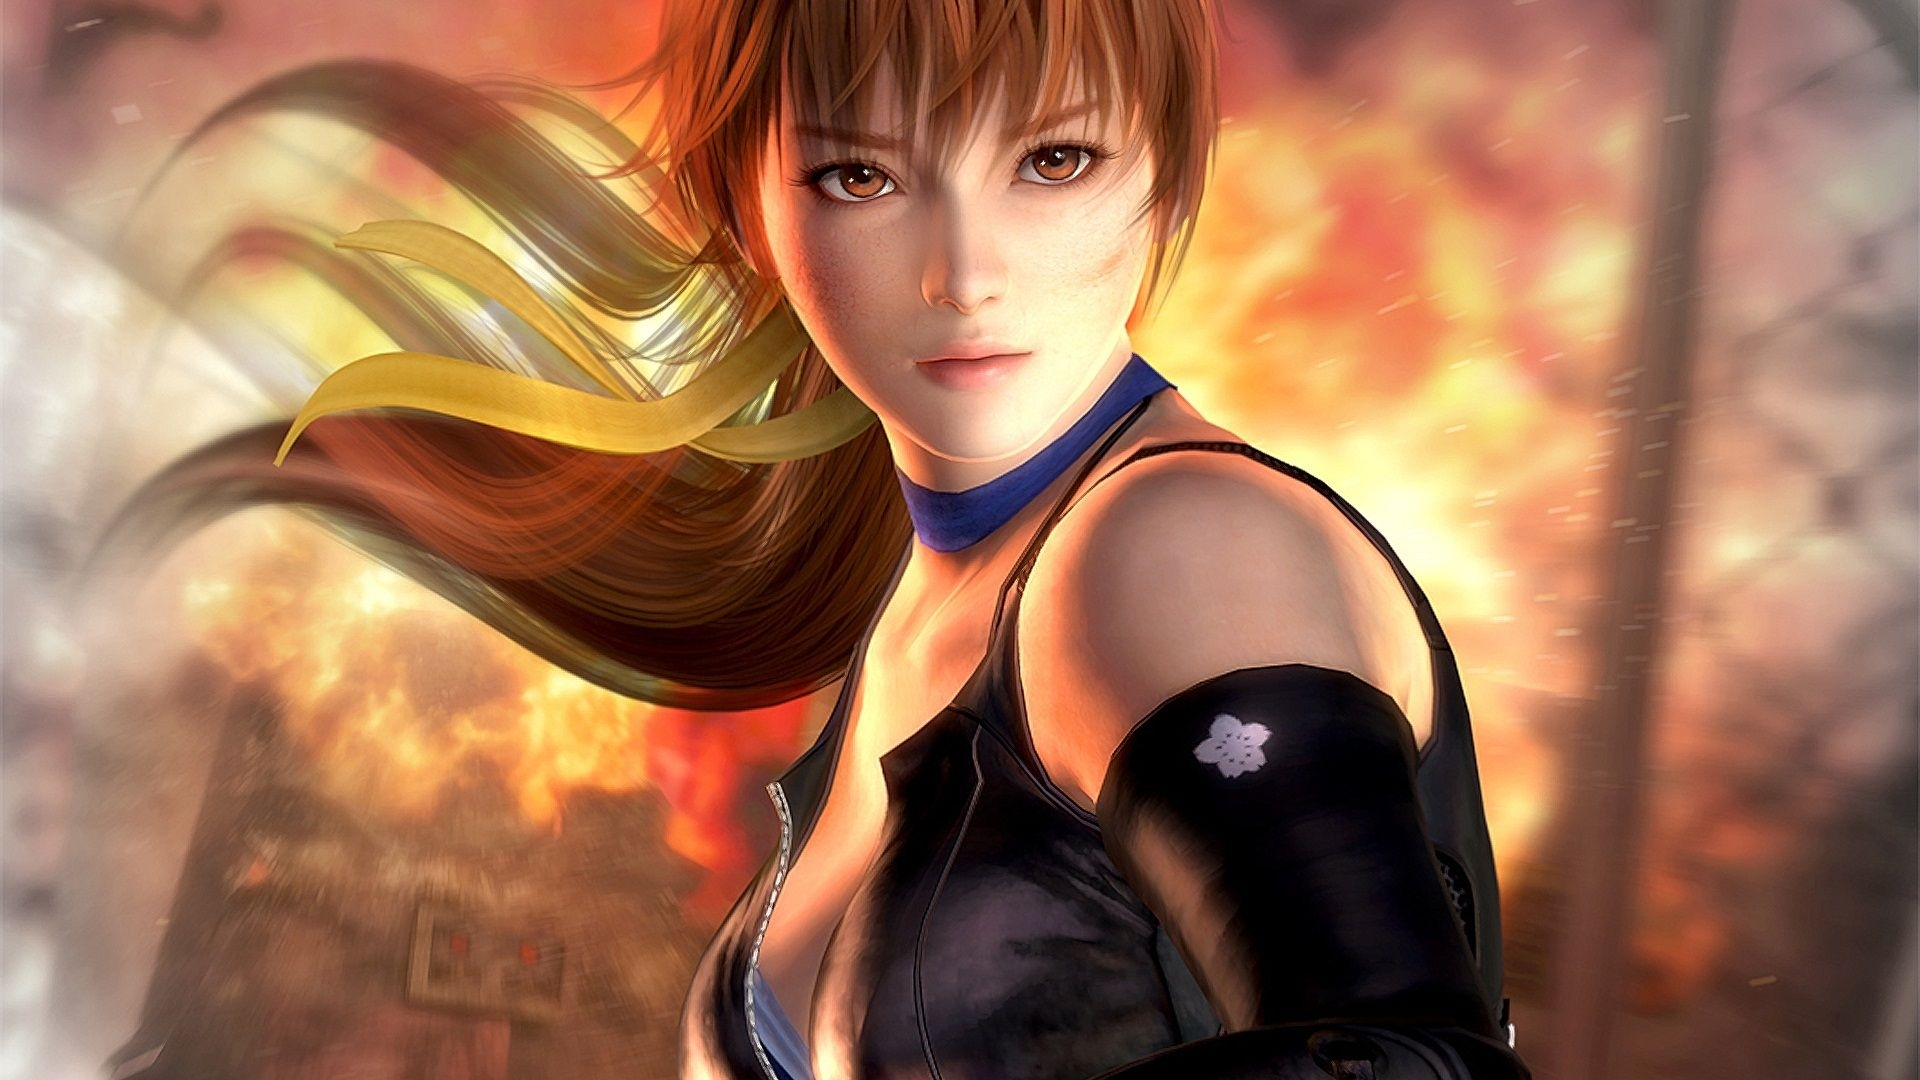 dead or alive 5 wallpapers, 45 high quality dead or alive 5 | all